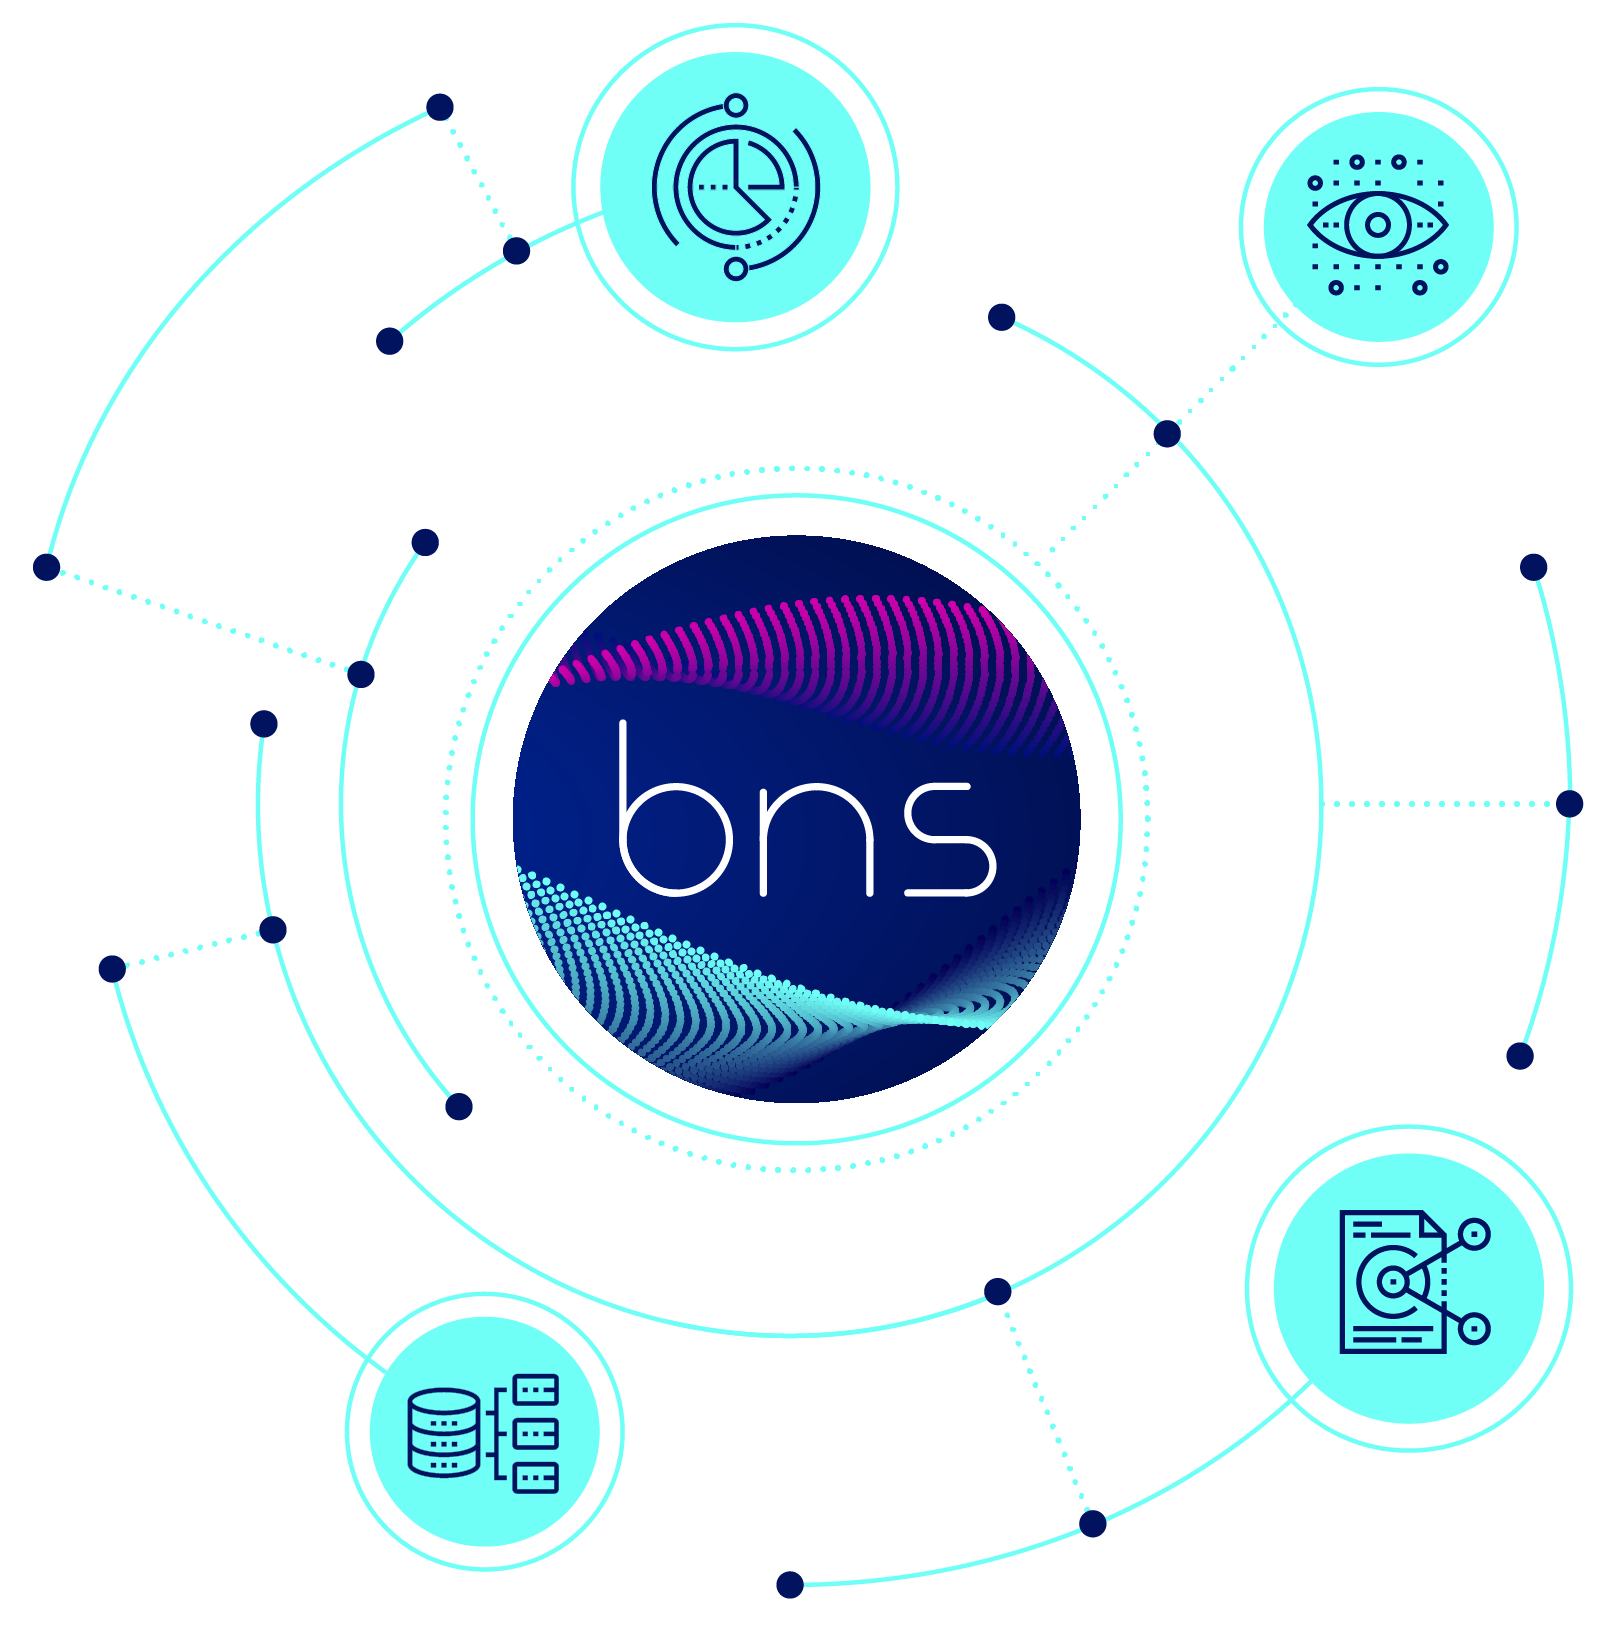 We are BNS—Building Noble Solutions and strategies for sustainability, technology, performance and operational planning, research and innovation